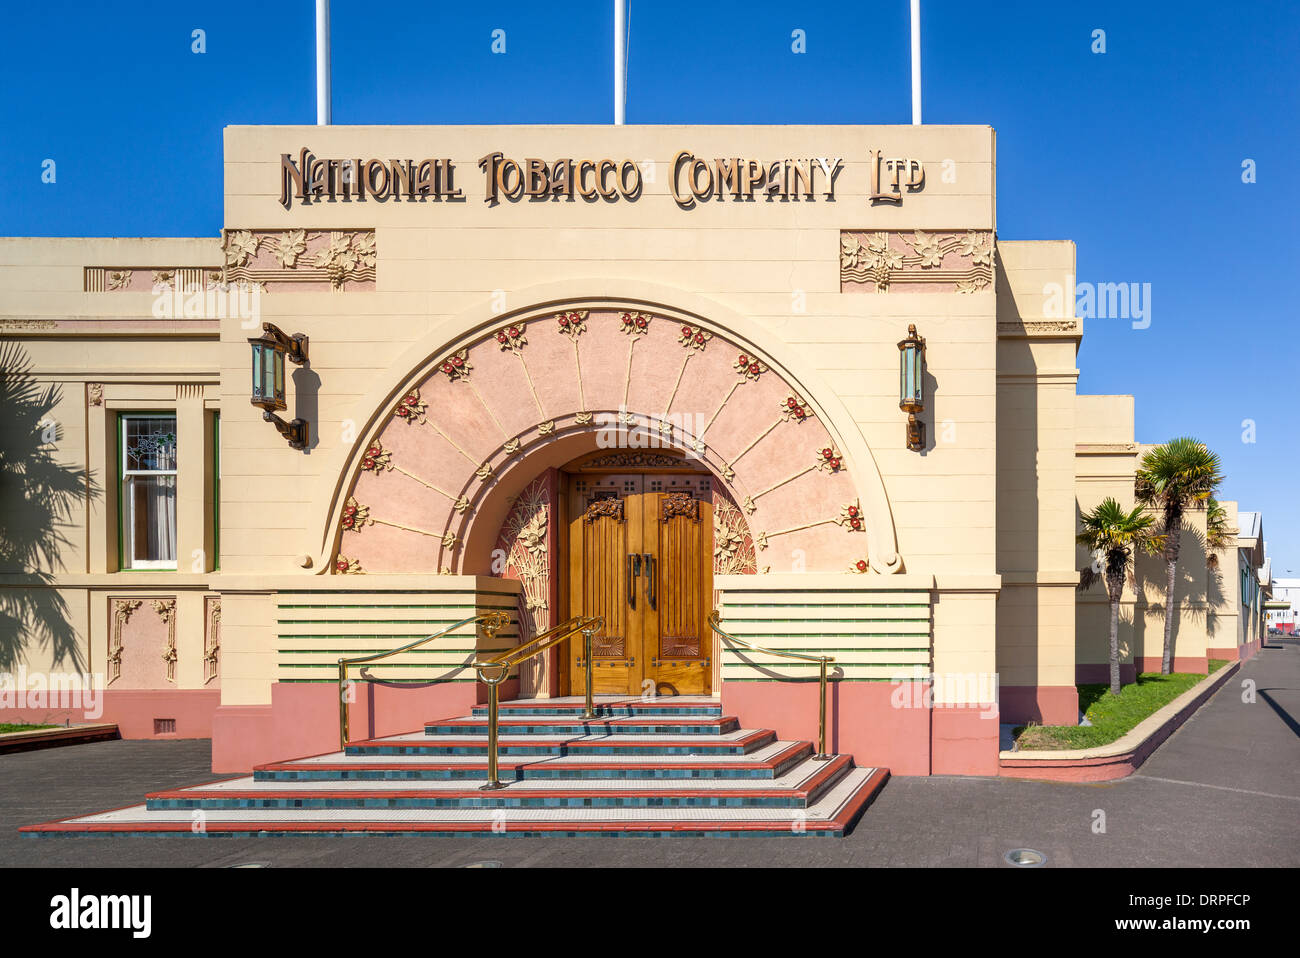 Napier Art Deco Famous National Tobacco Company Building, formerly Rothmans Building. Napier Ahuriri, New Zealand - Stock Image